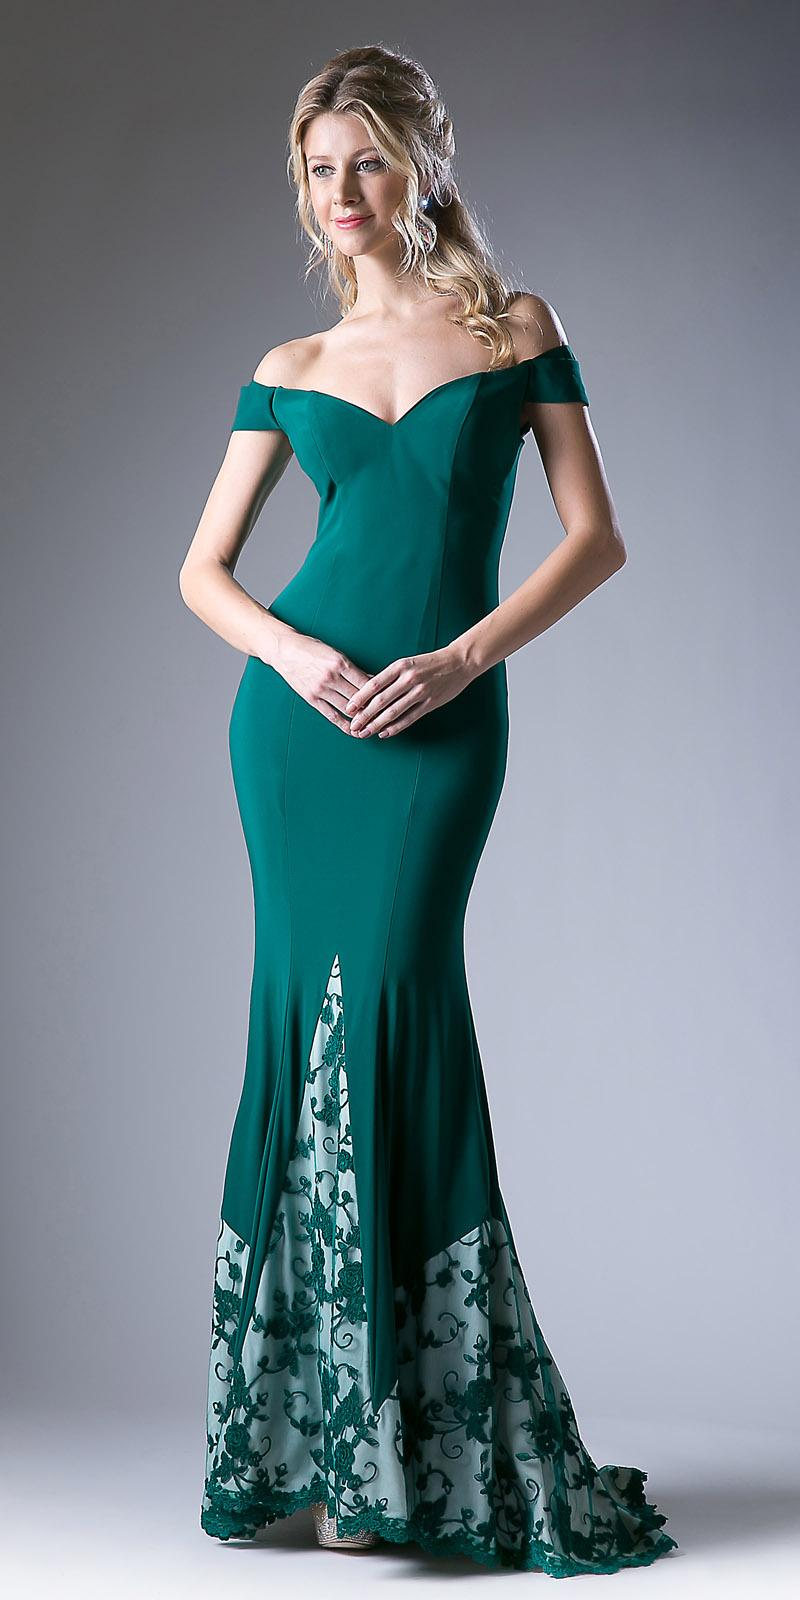 01bffe0e73b8 Green Off Shoulder Mermaid Long Formal Dress with Embroidered Hem ...